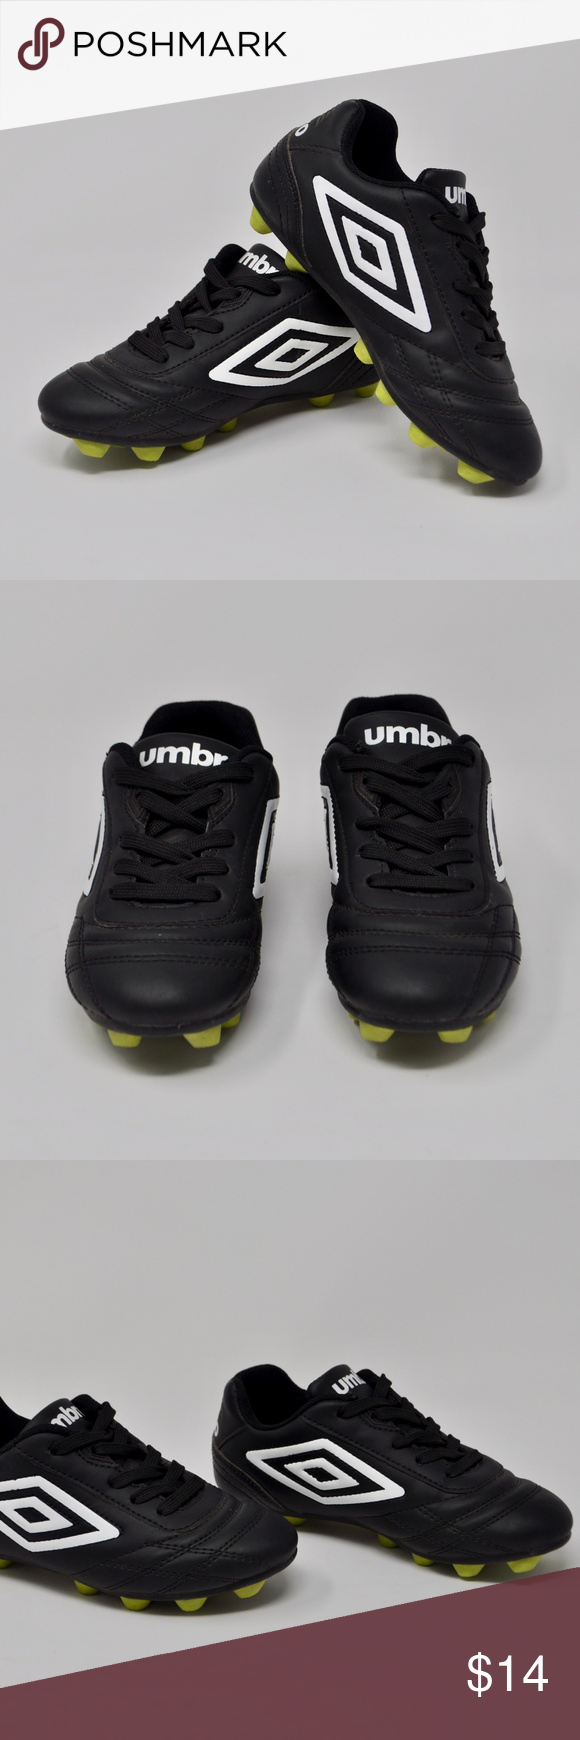 1452cd6bd1e Umbro Boys Black   White Soccer Cleats Youth 12 Umbro Boys Black   White  Soccer Cleats Size Youth 12 Condition  Pre-Owned